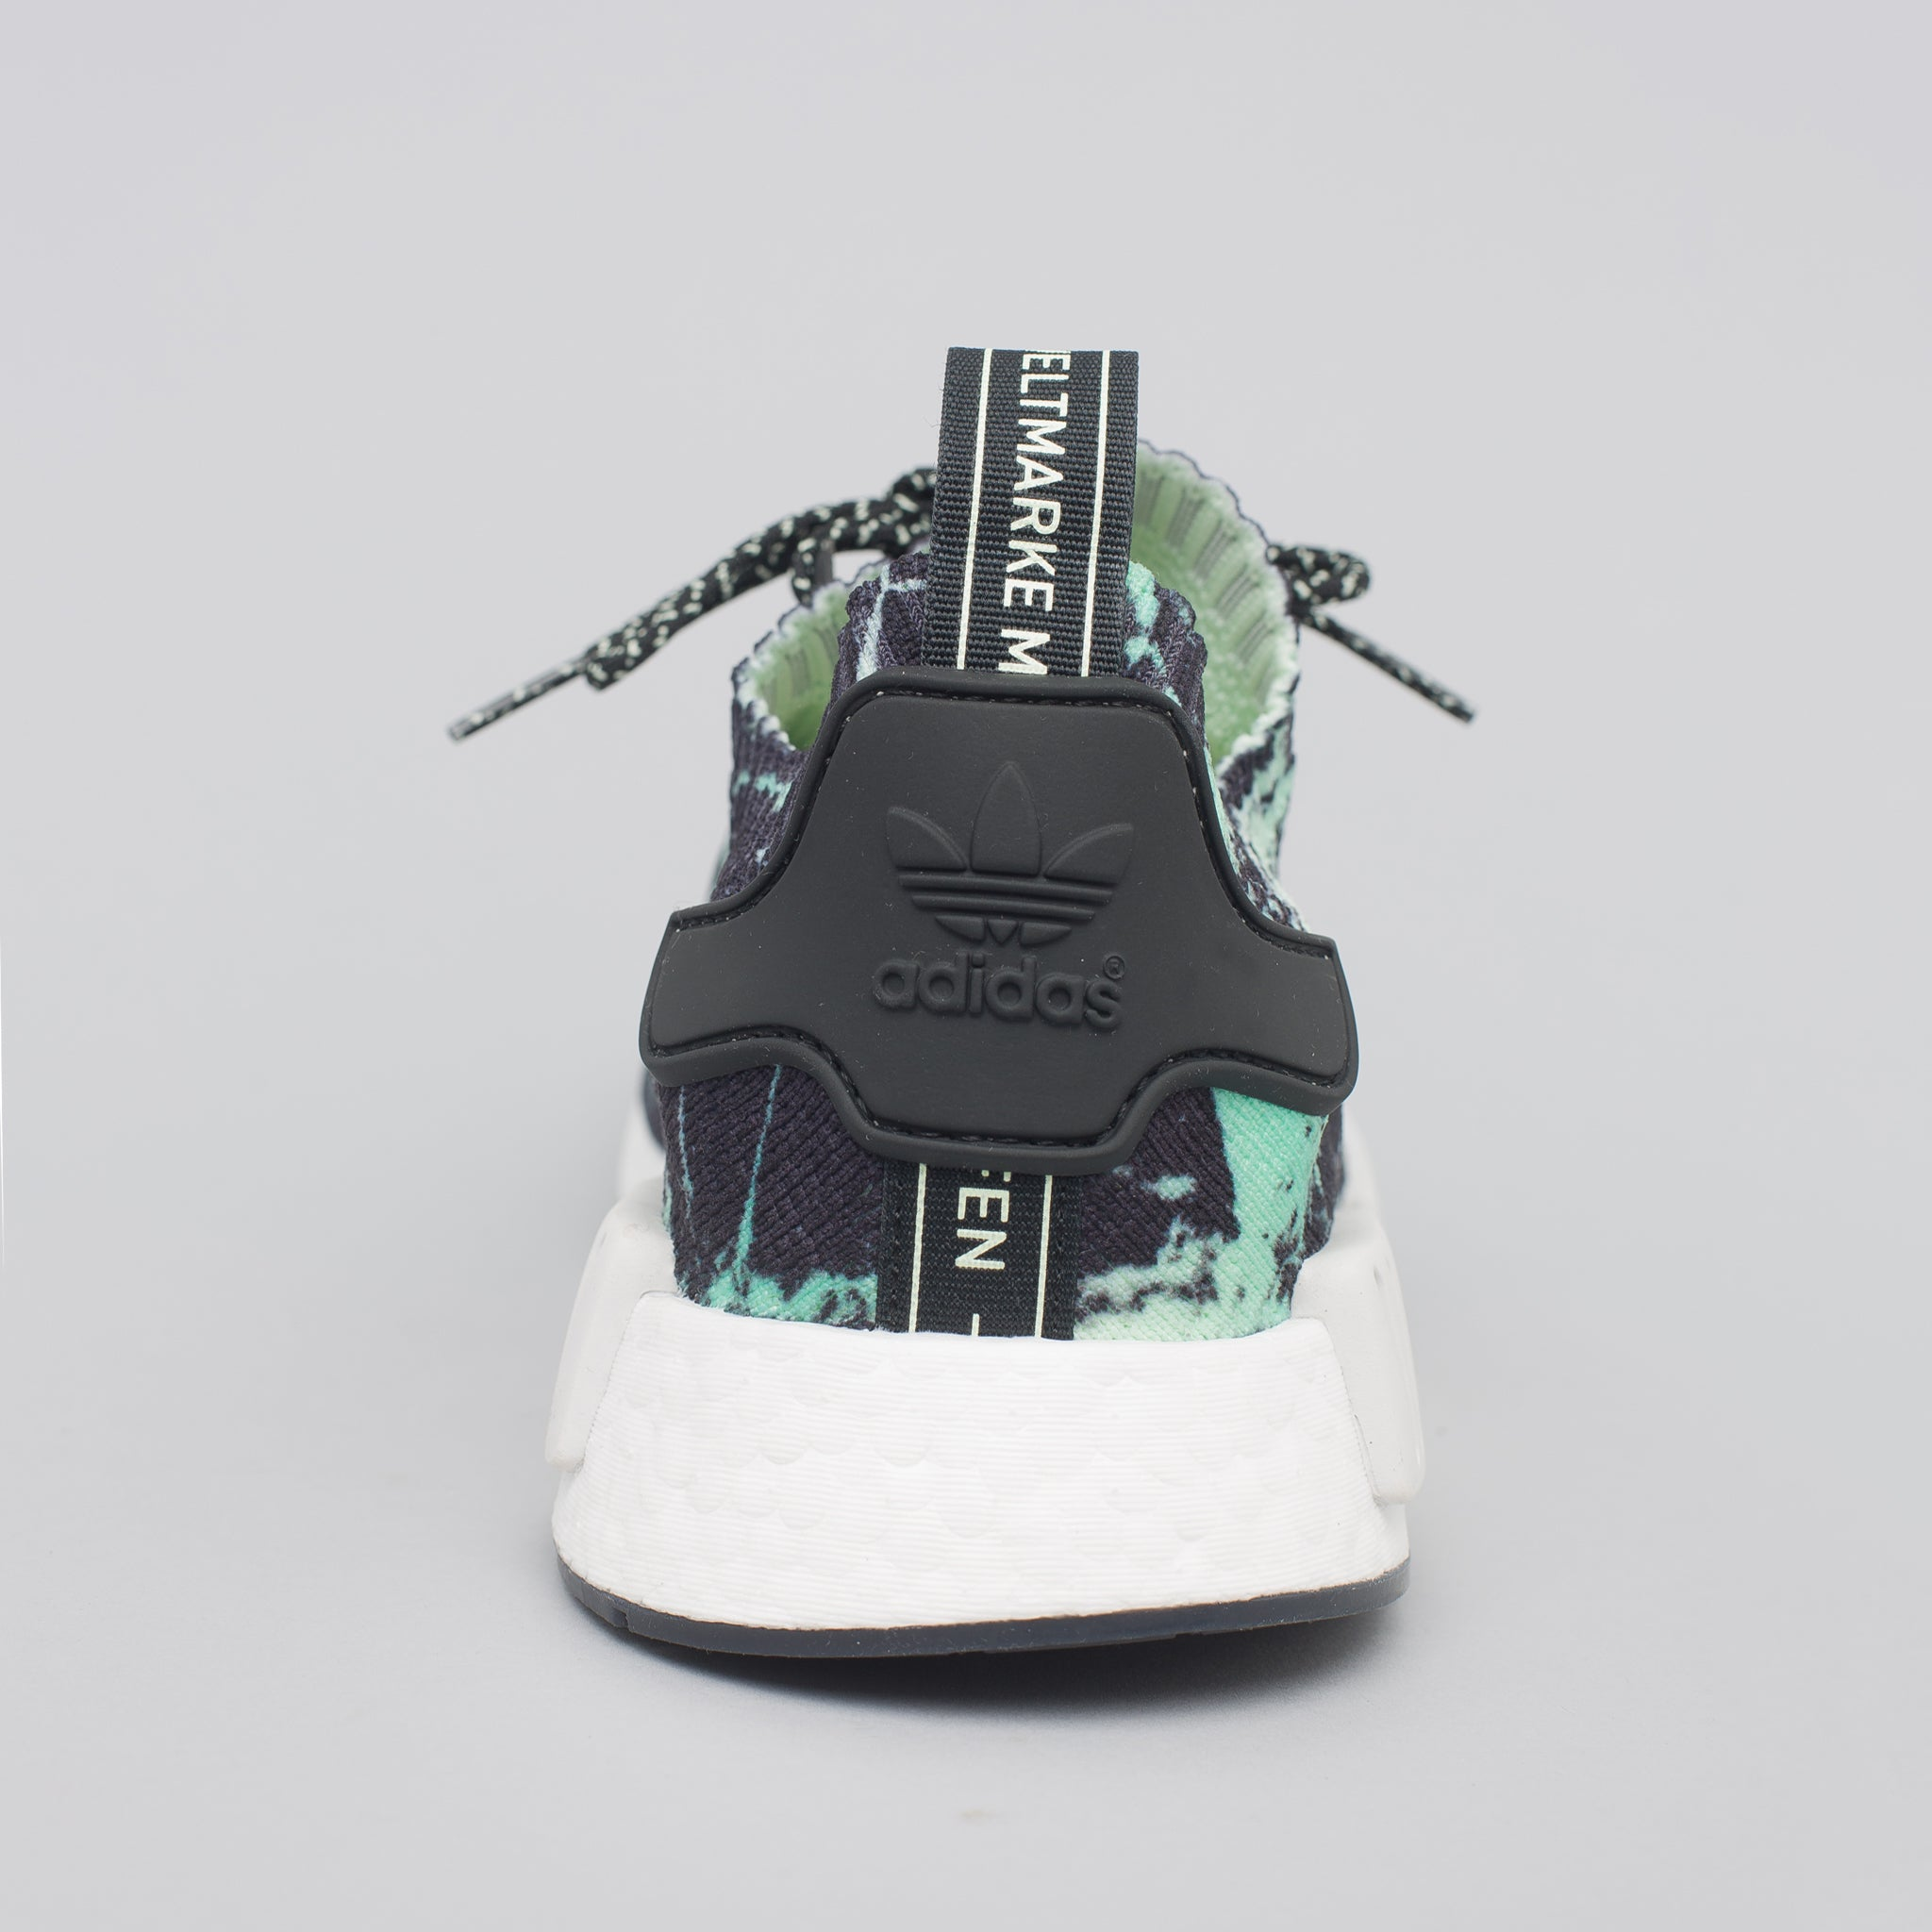 NMD R1 Primeknit in Green Marble